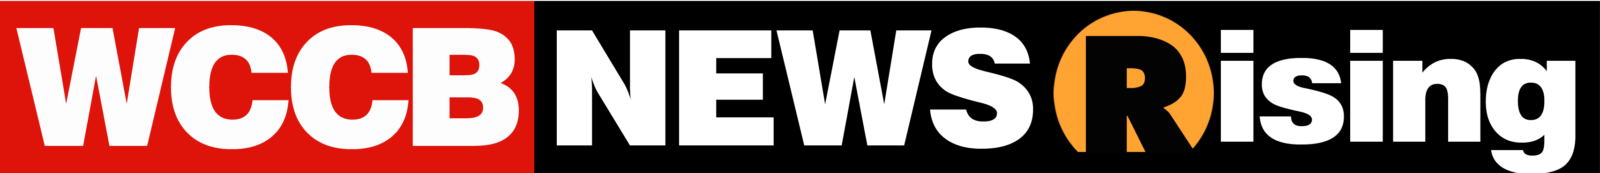 WCCB-NEWS-RISING_LOGO